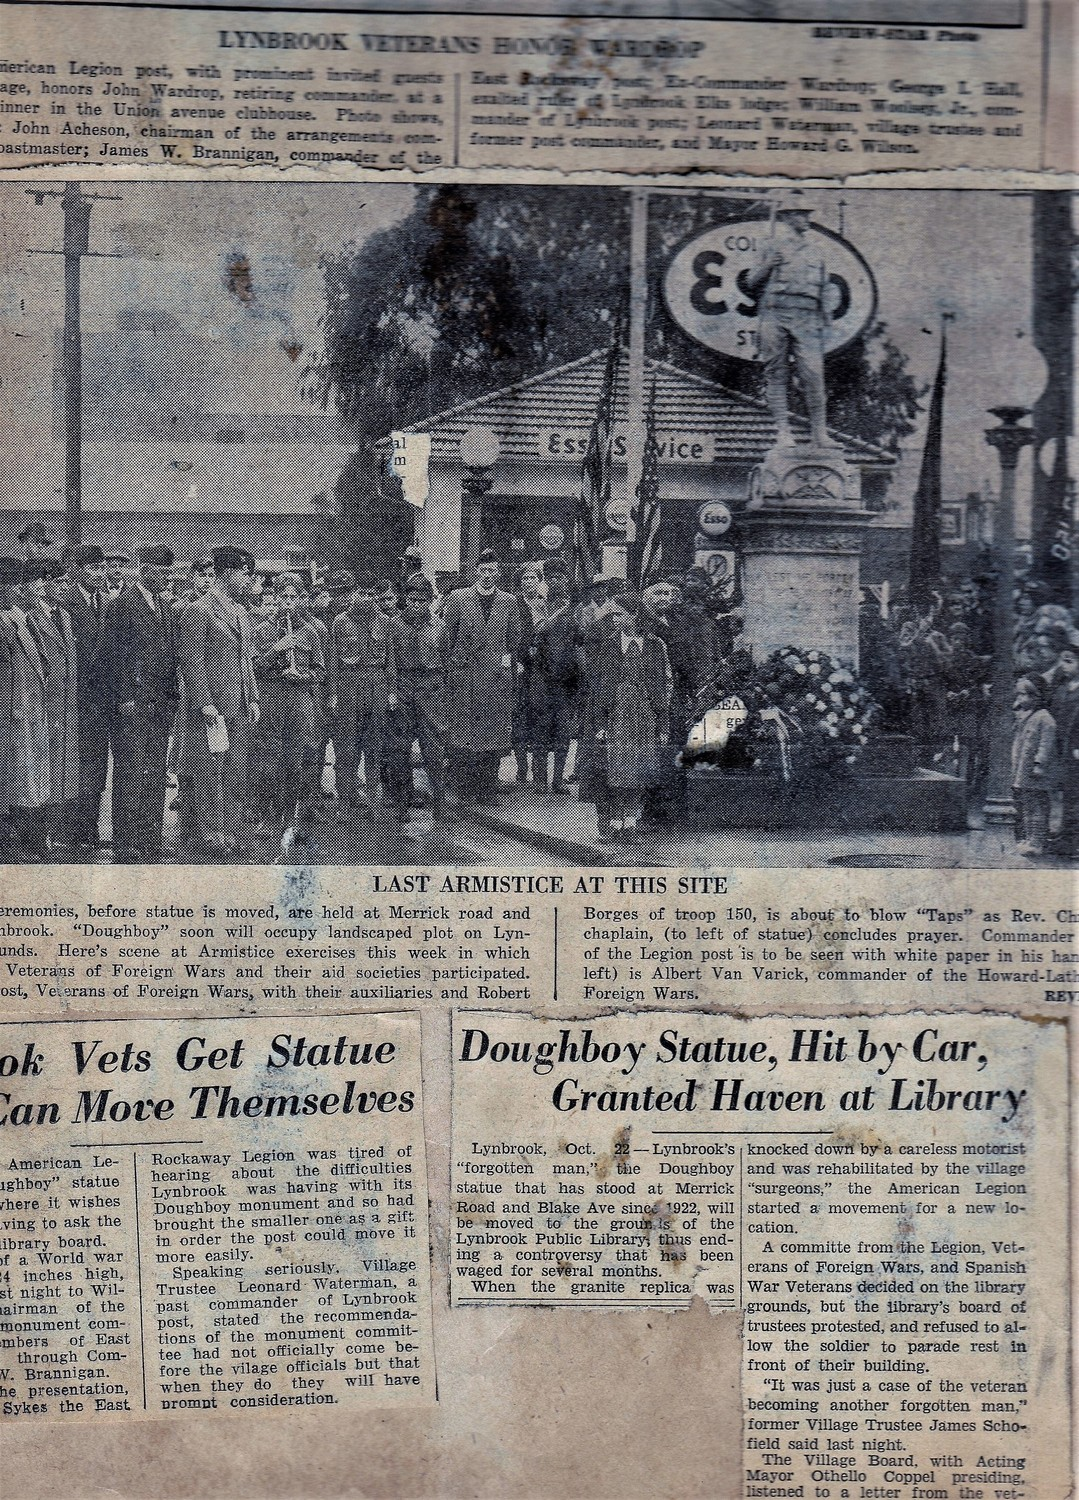 Newspaper clippings from the 1930s show different historical events involving the monument, including American Legion members, other veterans and residents at Armistice Services on Nov. 11, 1936, on Merrick Road and Blake Avenue, just before the Doughboy was moved to the library.